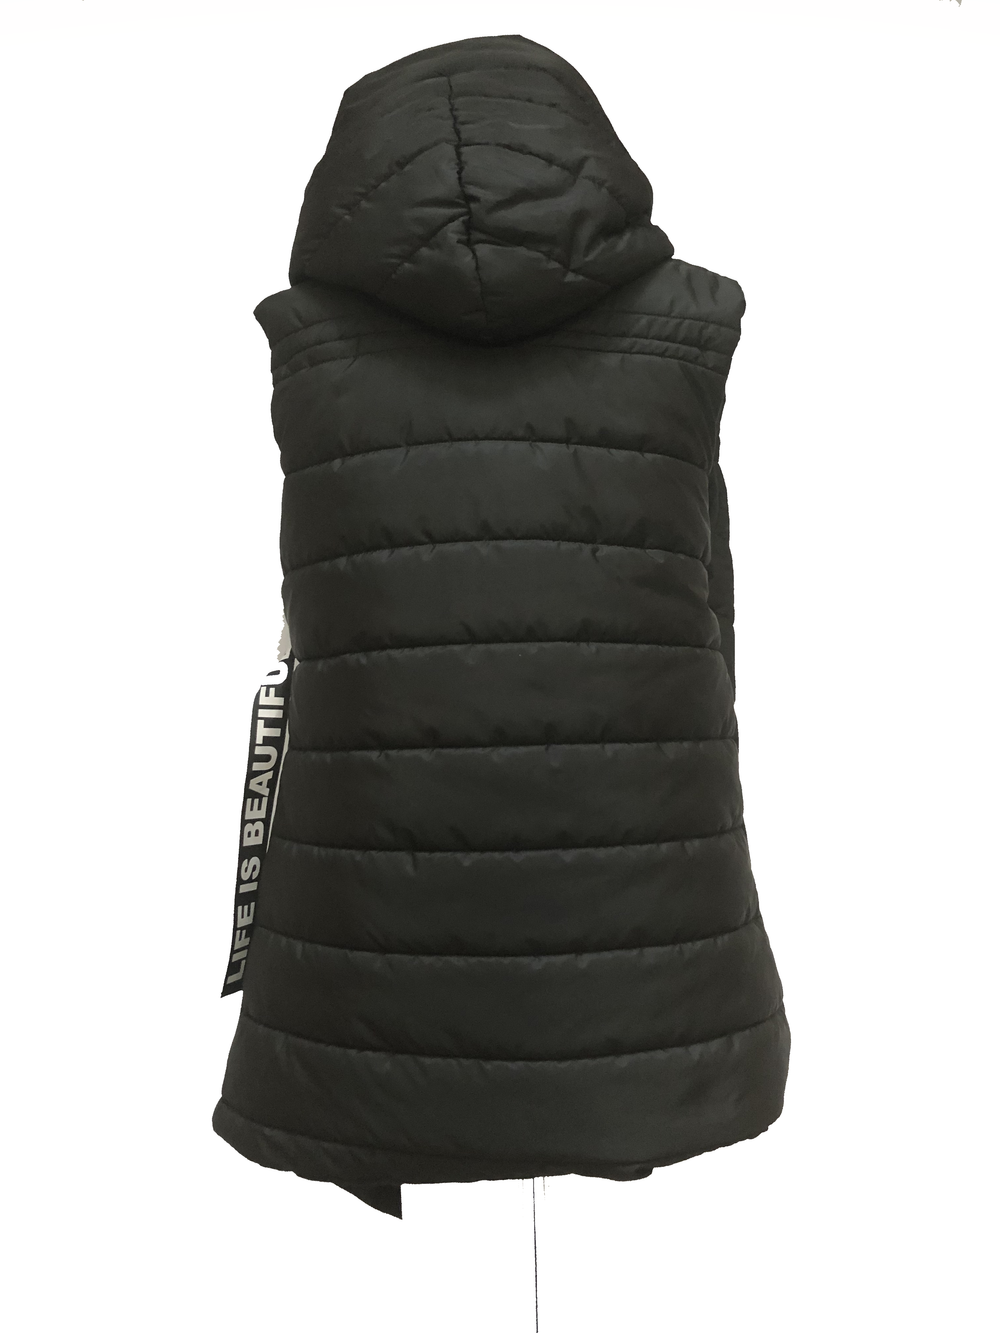 Wrap up Warm!! It Gilet Time!!